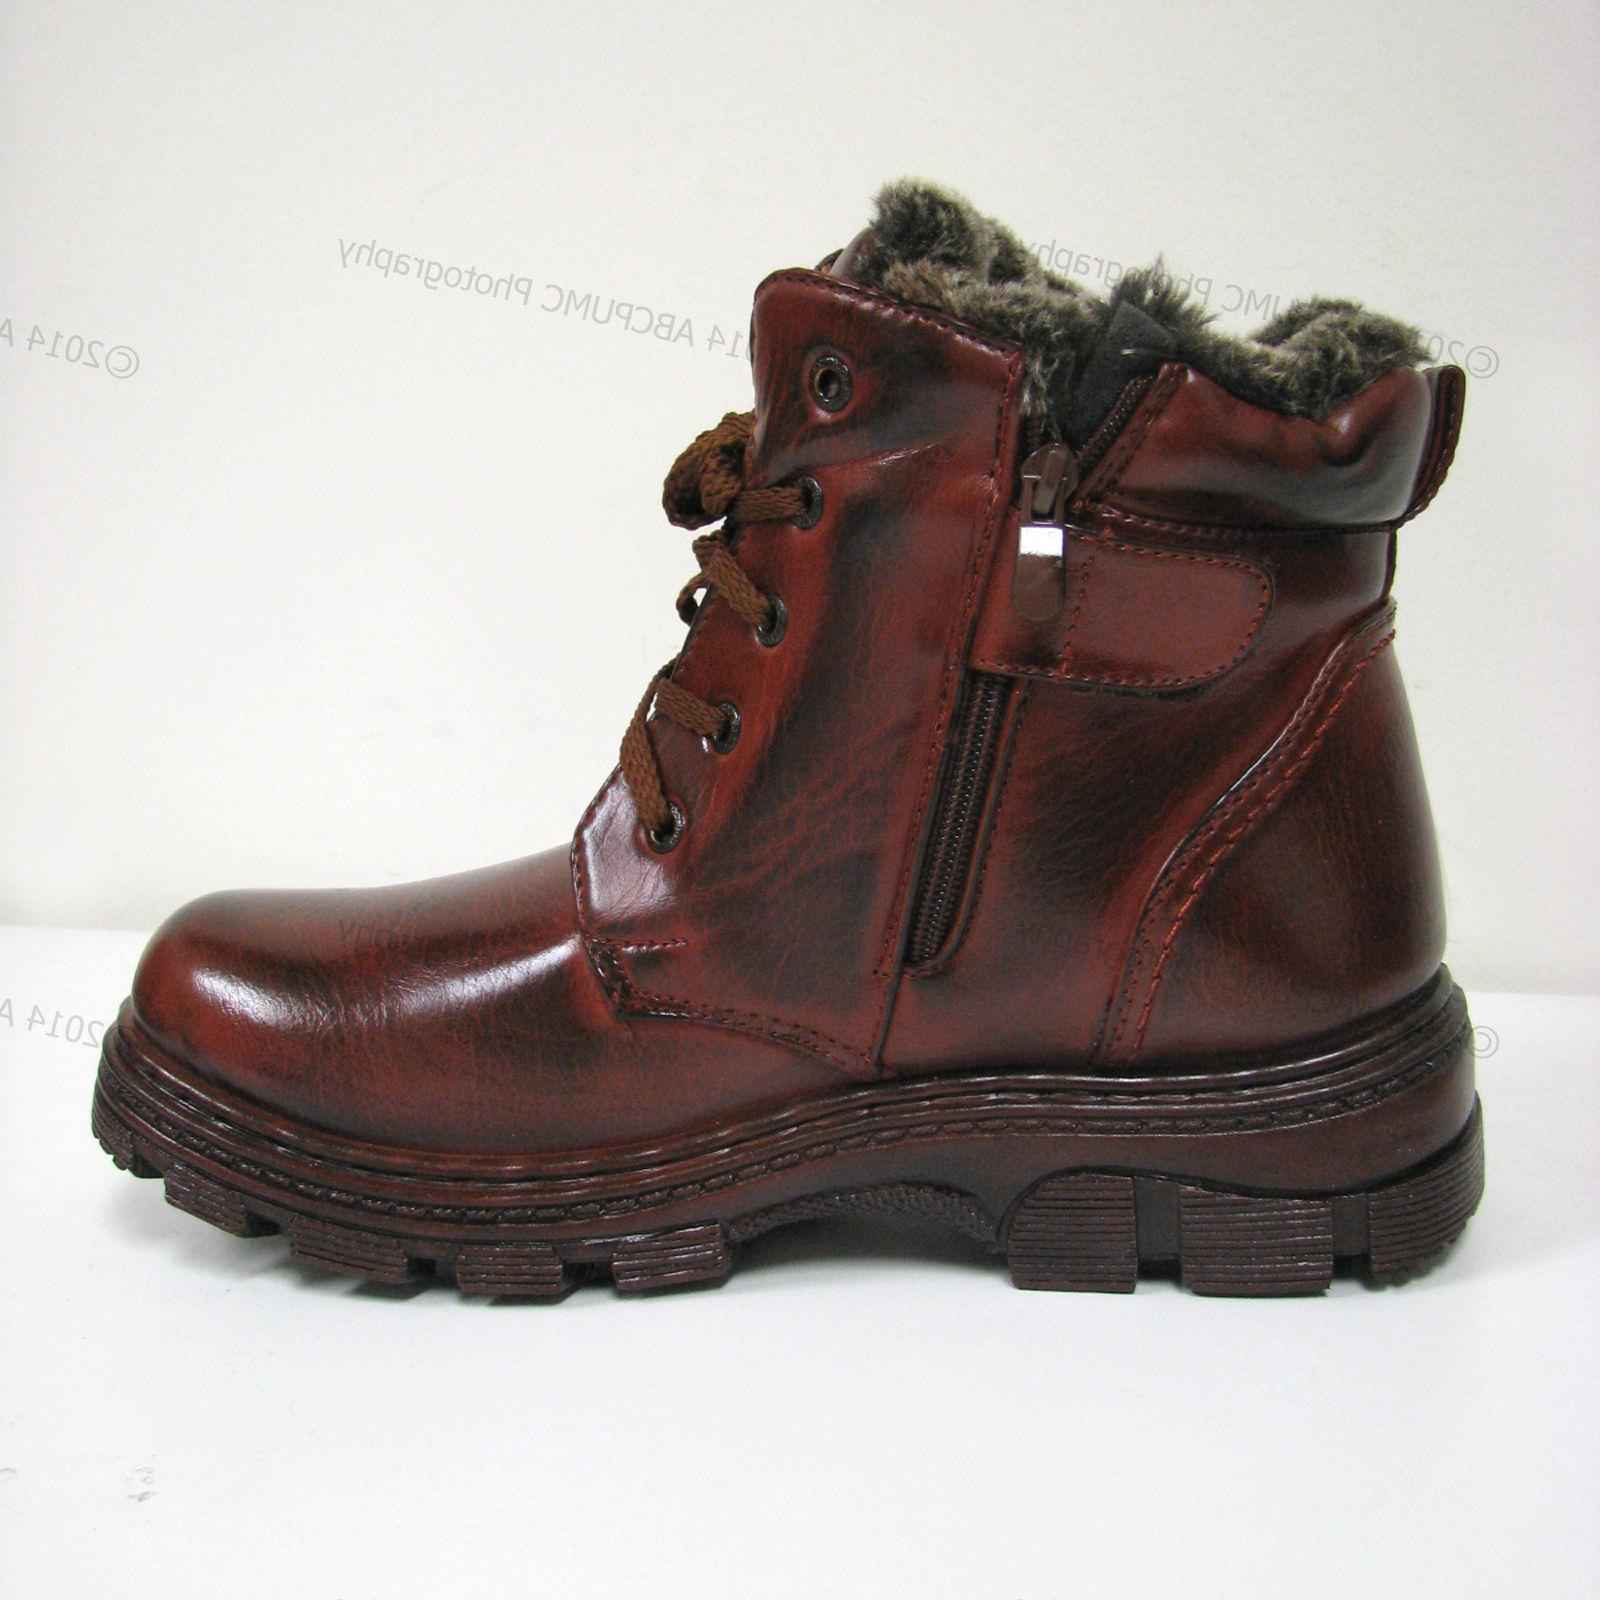 New Men's Winter Boots Sizes:7-13